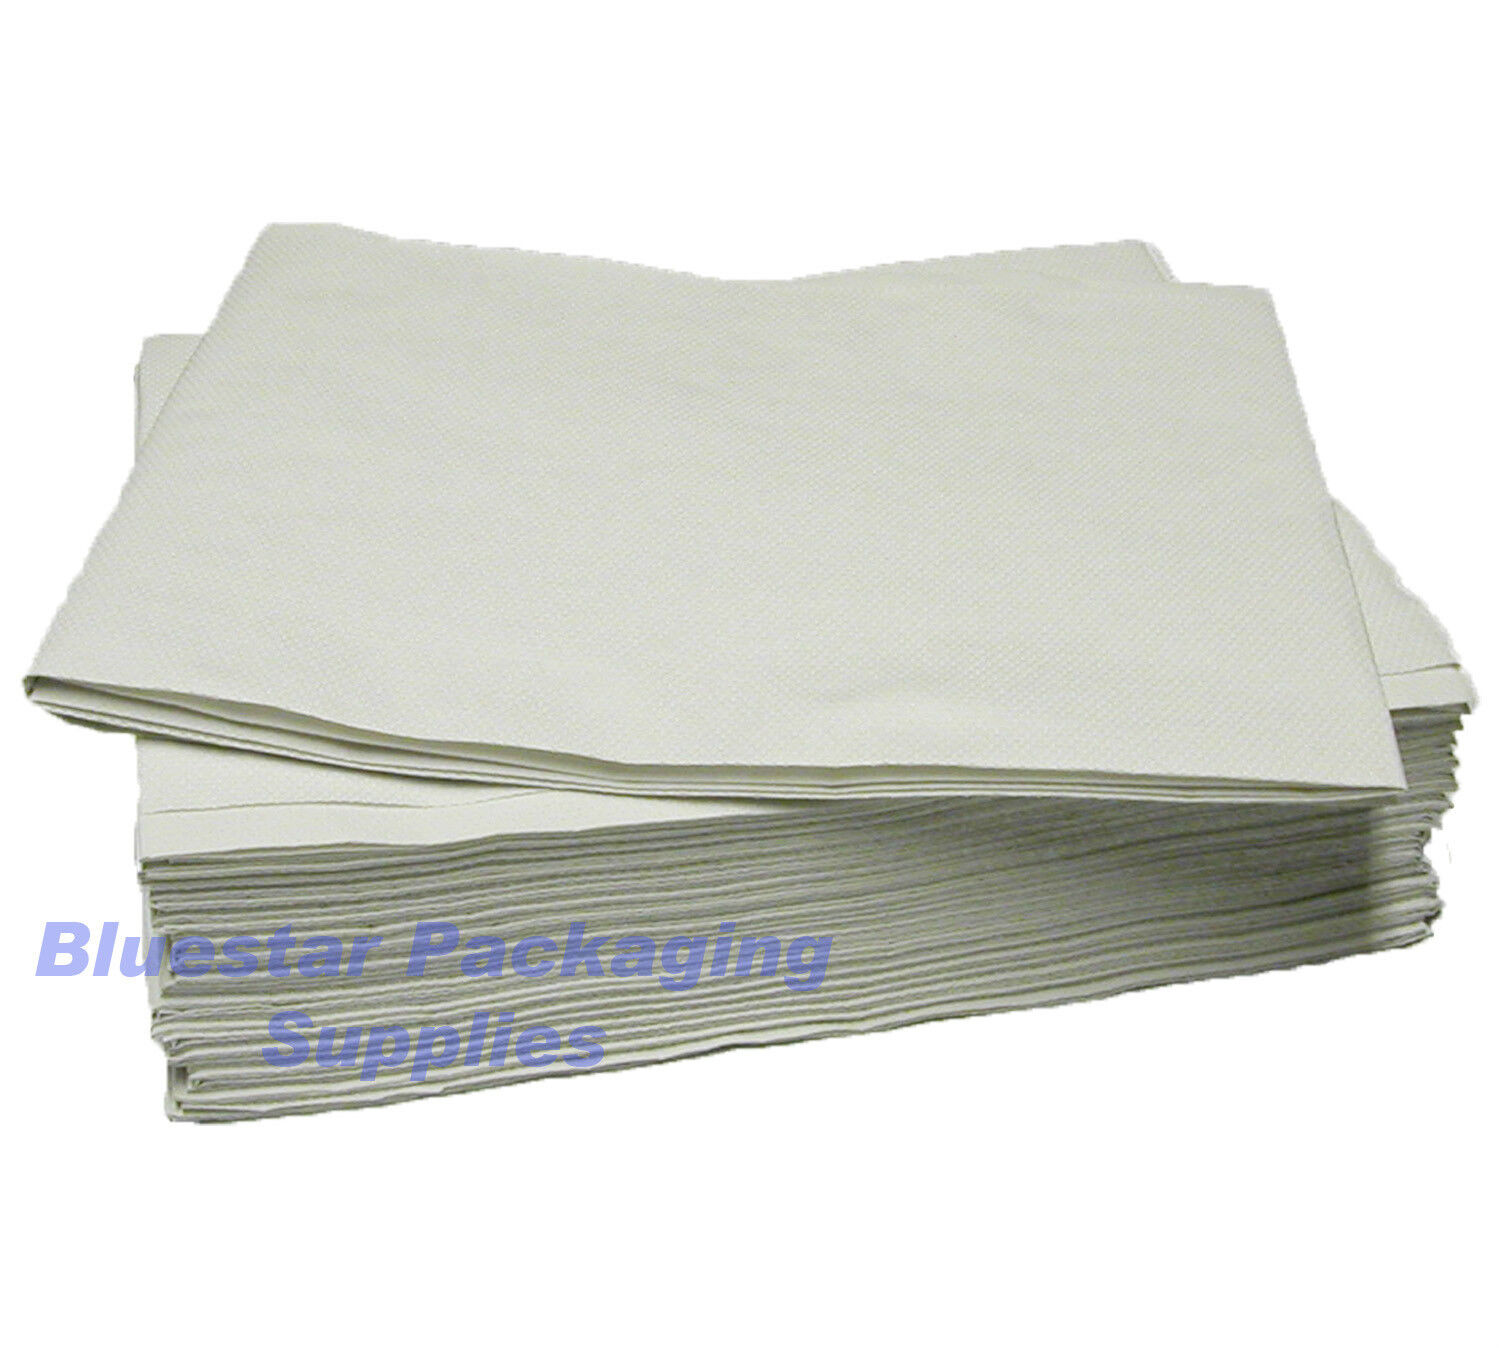 25 x White Disposable Paper Table Cloth Cover 90x90cm